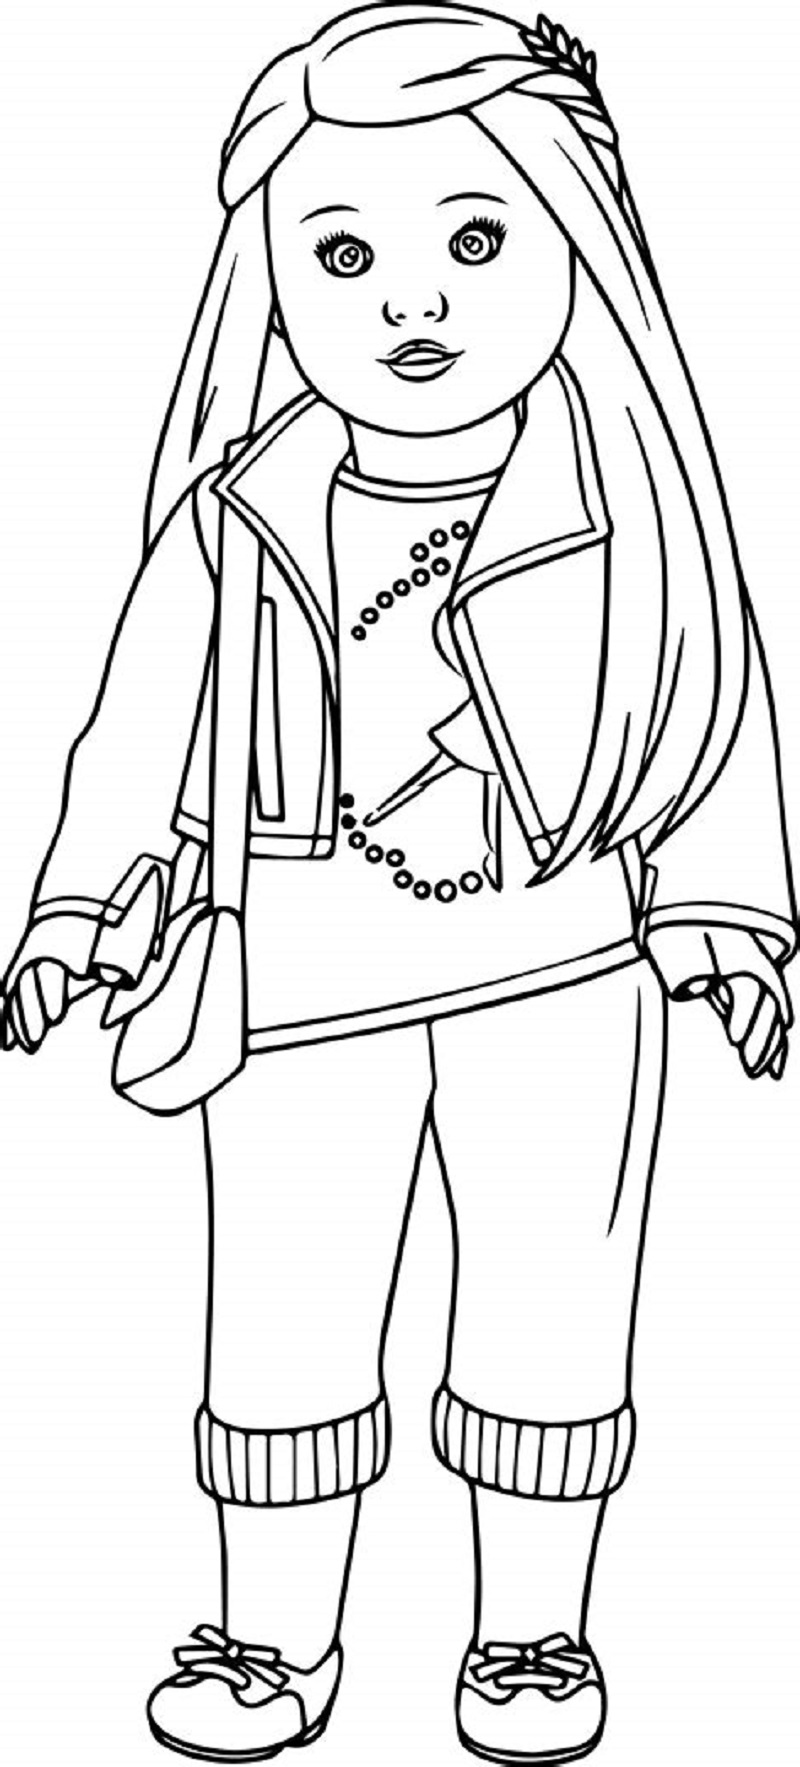 coloring dolls lol dolls coloring pages free printable lol dolls dolls coloring 1 2